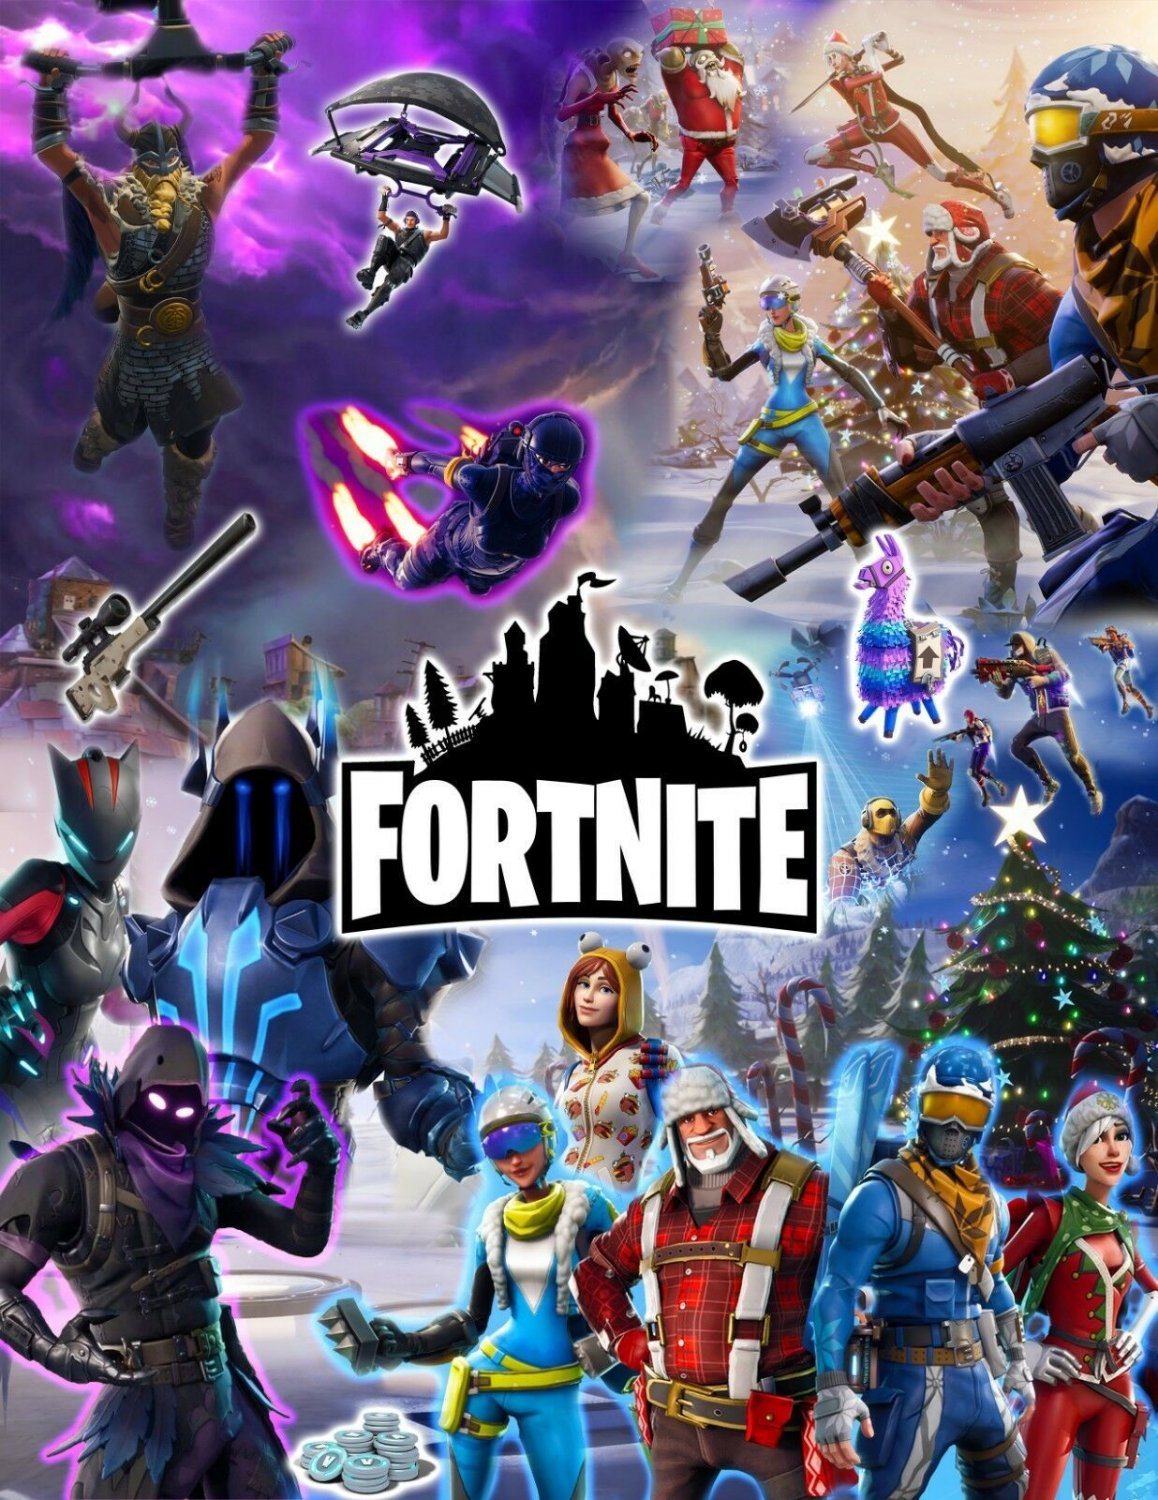 Fortnite Game  Poster 24x32 inches